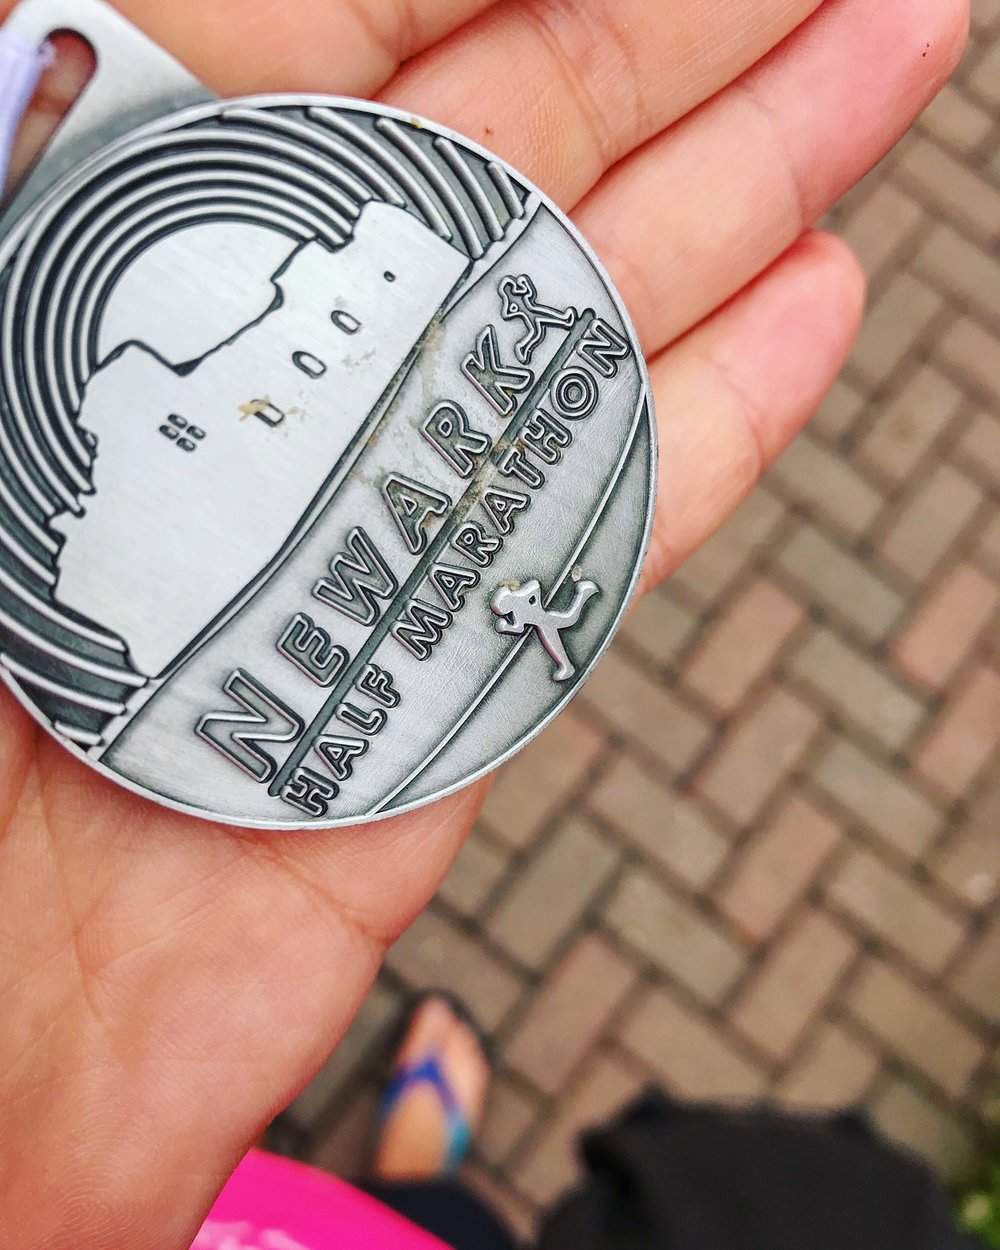 No idea why it is so cruddy, but hello medal!